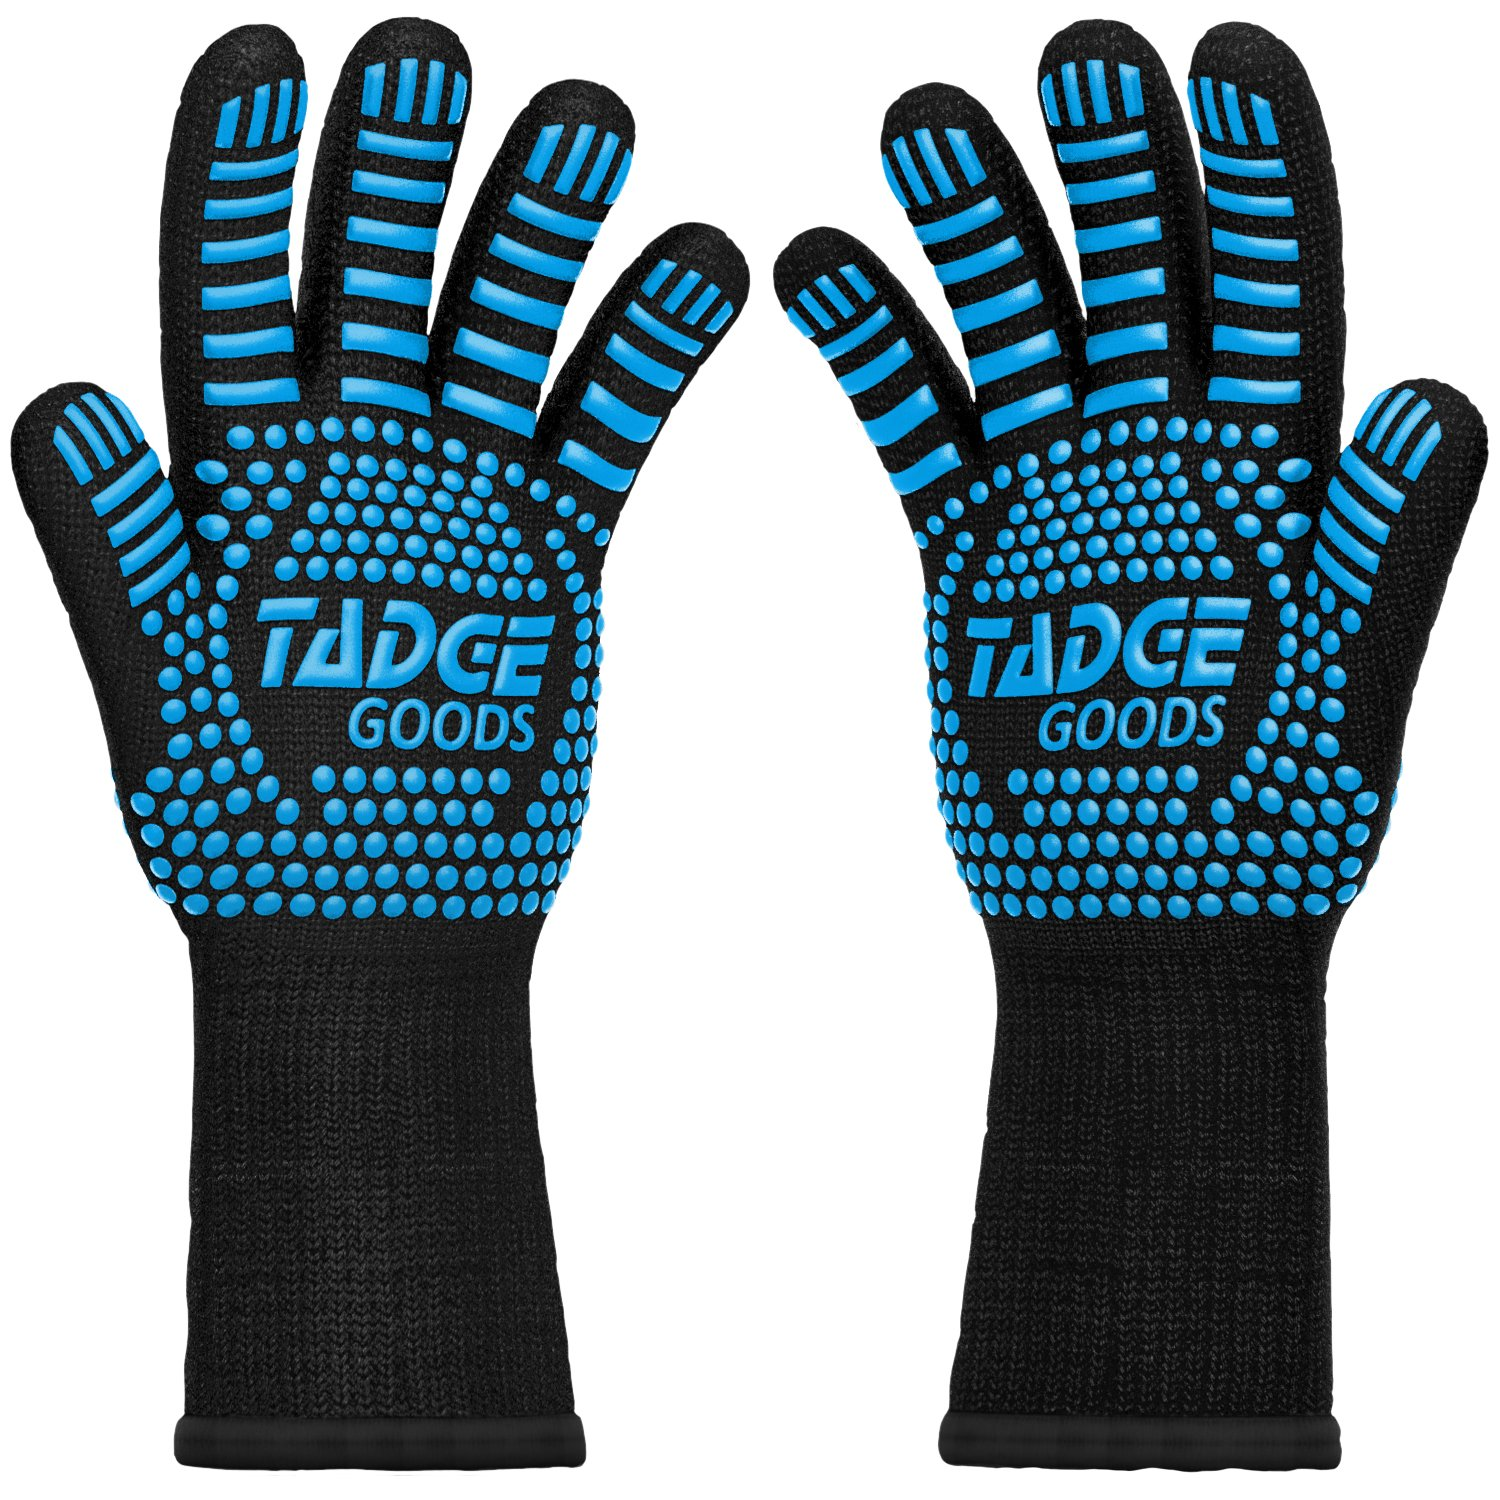 Oven Mitts Heat Resistant BBQ Gloves – Best Silicone Cooking & Grilling Accessories – Extreme Hot 932 Degrees Hand & Forearm Protection, Blue by Tadge Goods